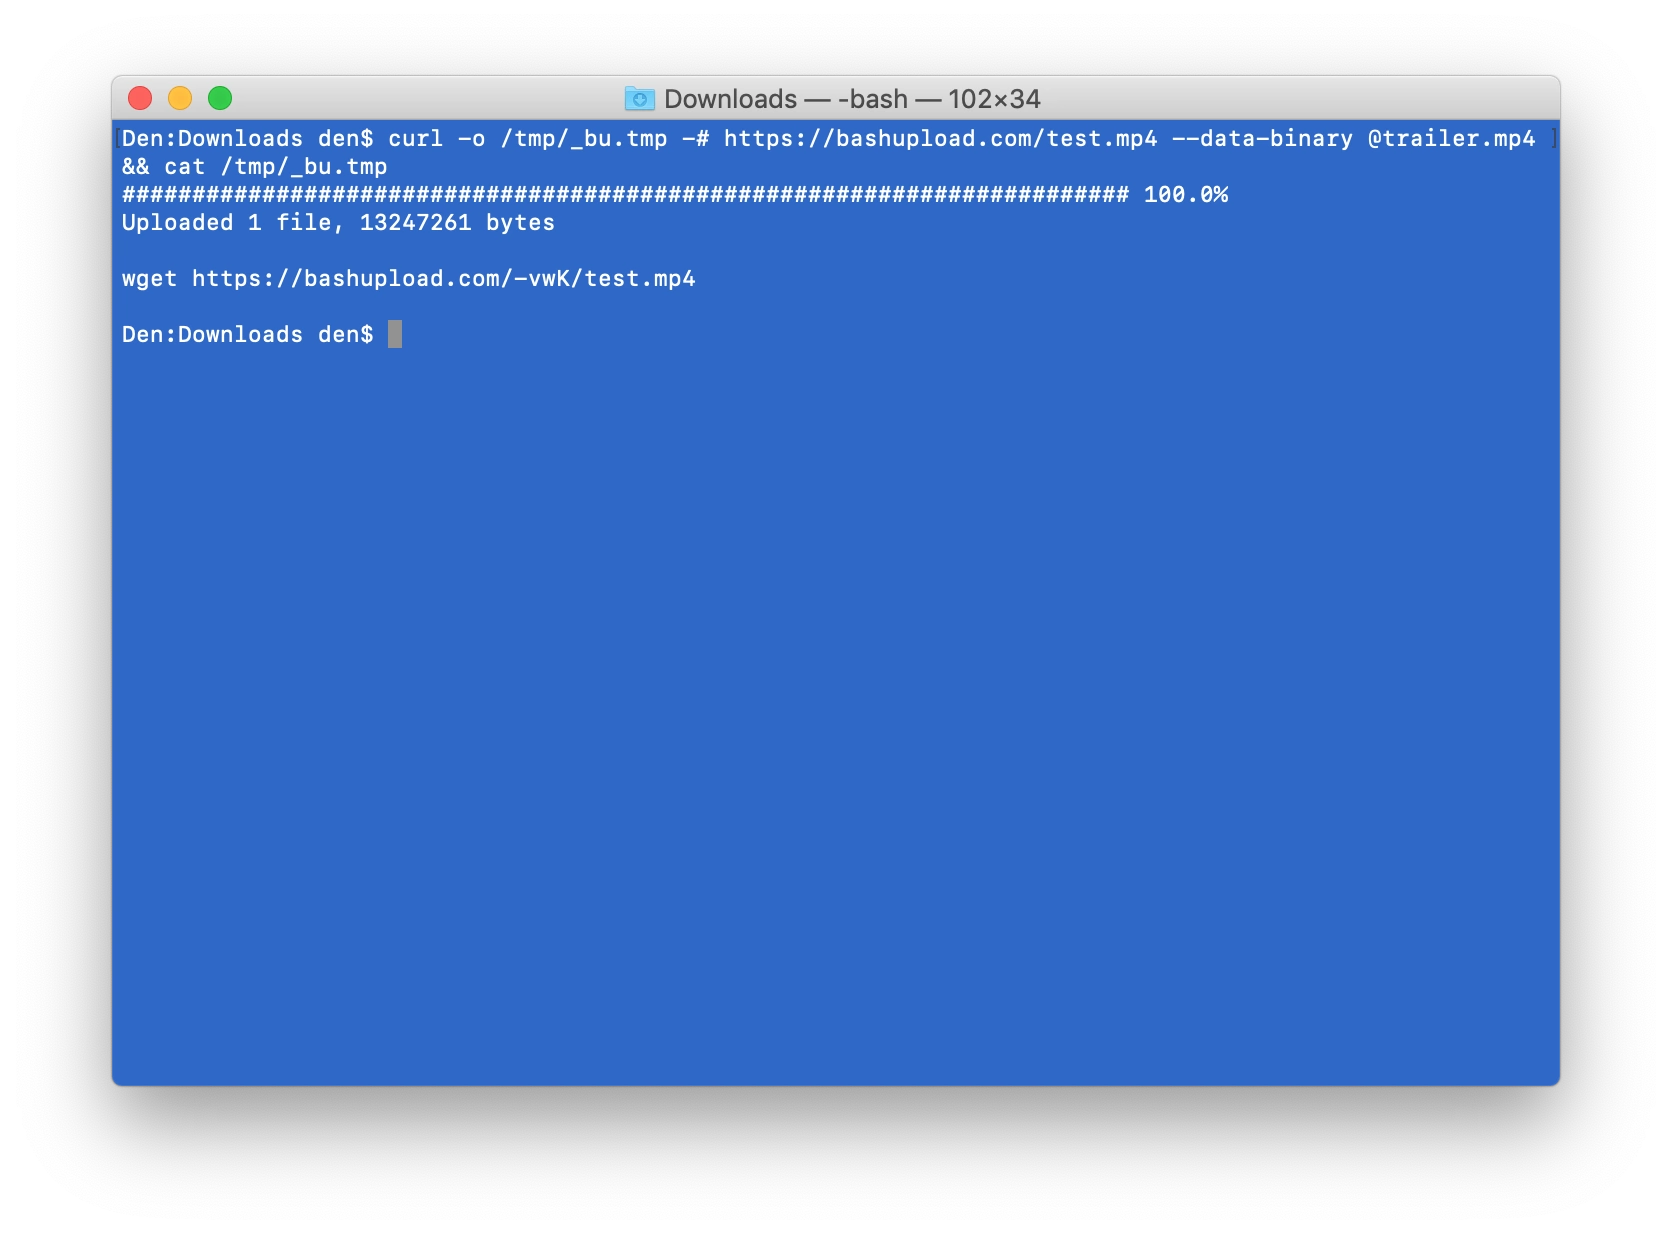 Image of file download info from command line